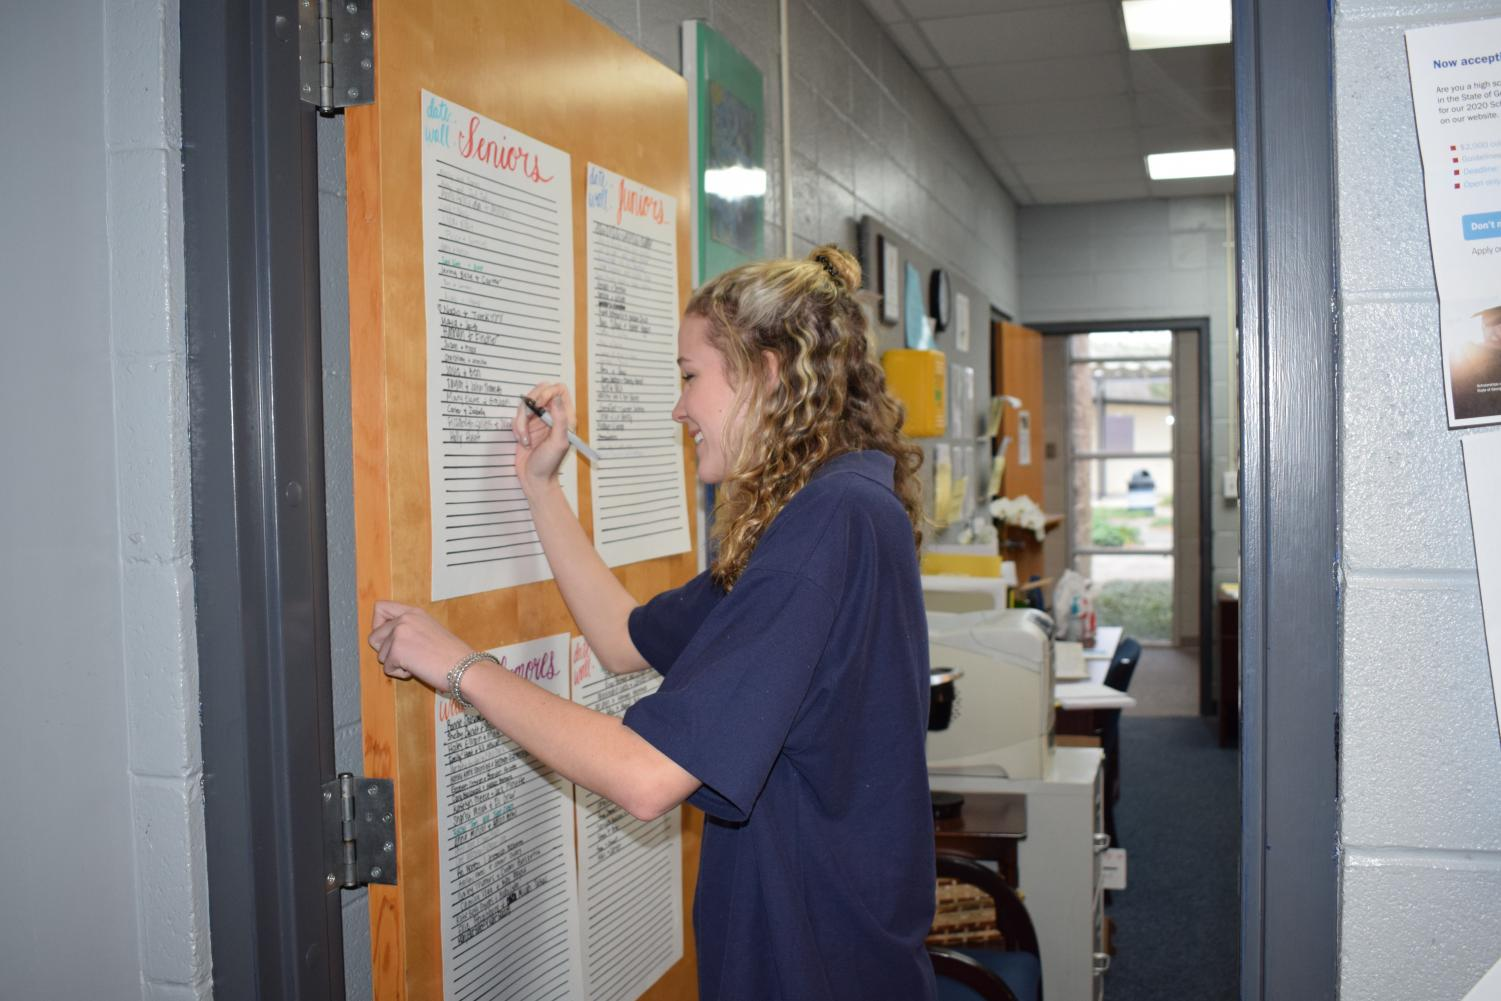 Senior Holly Hint signs up for the date wall